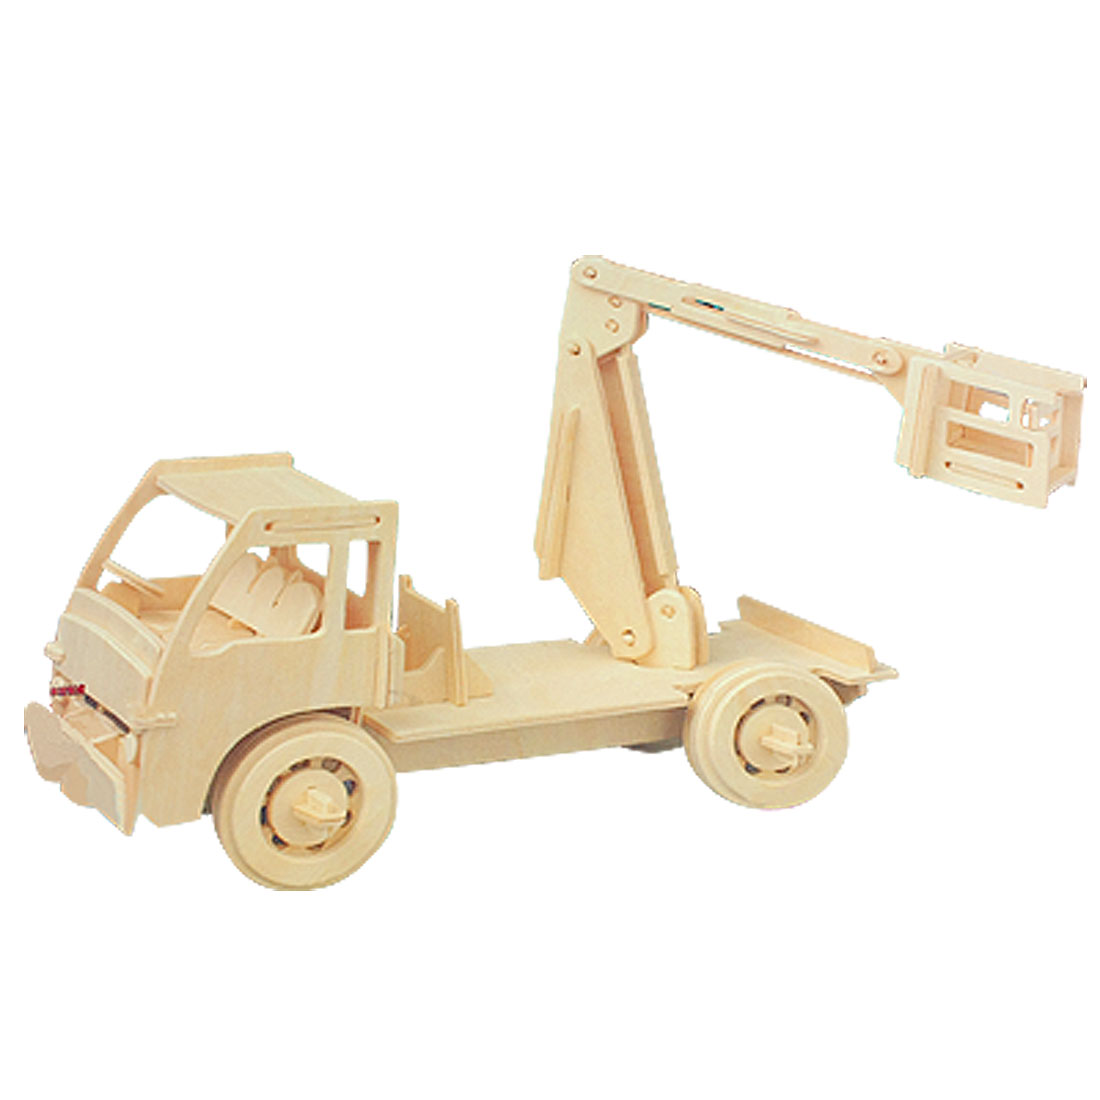 Children Crane Model Woodcraft Construction Kit Puzzle Toy Gift